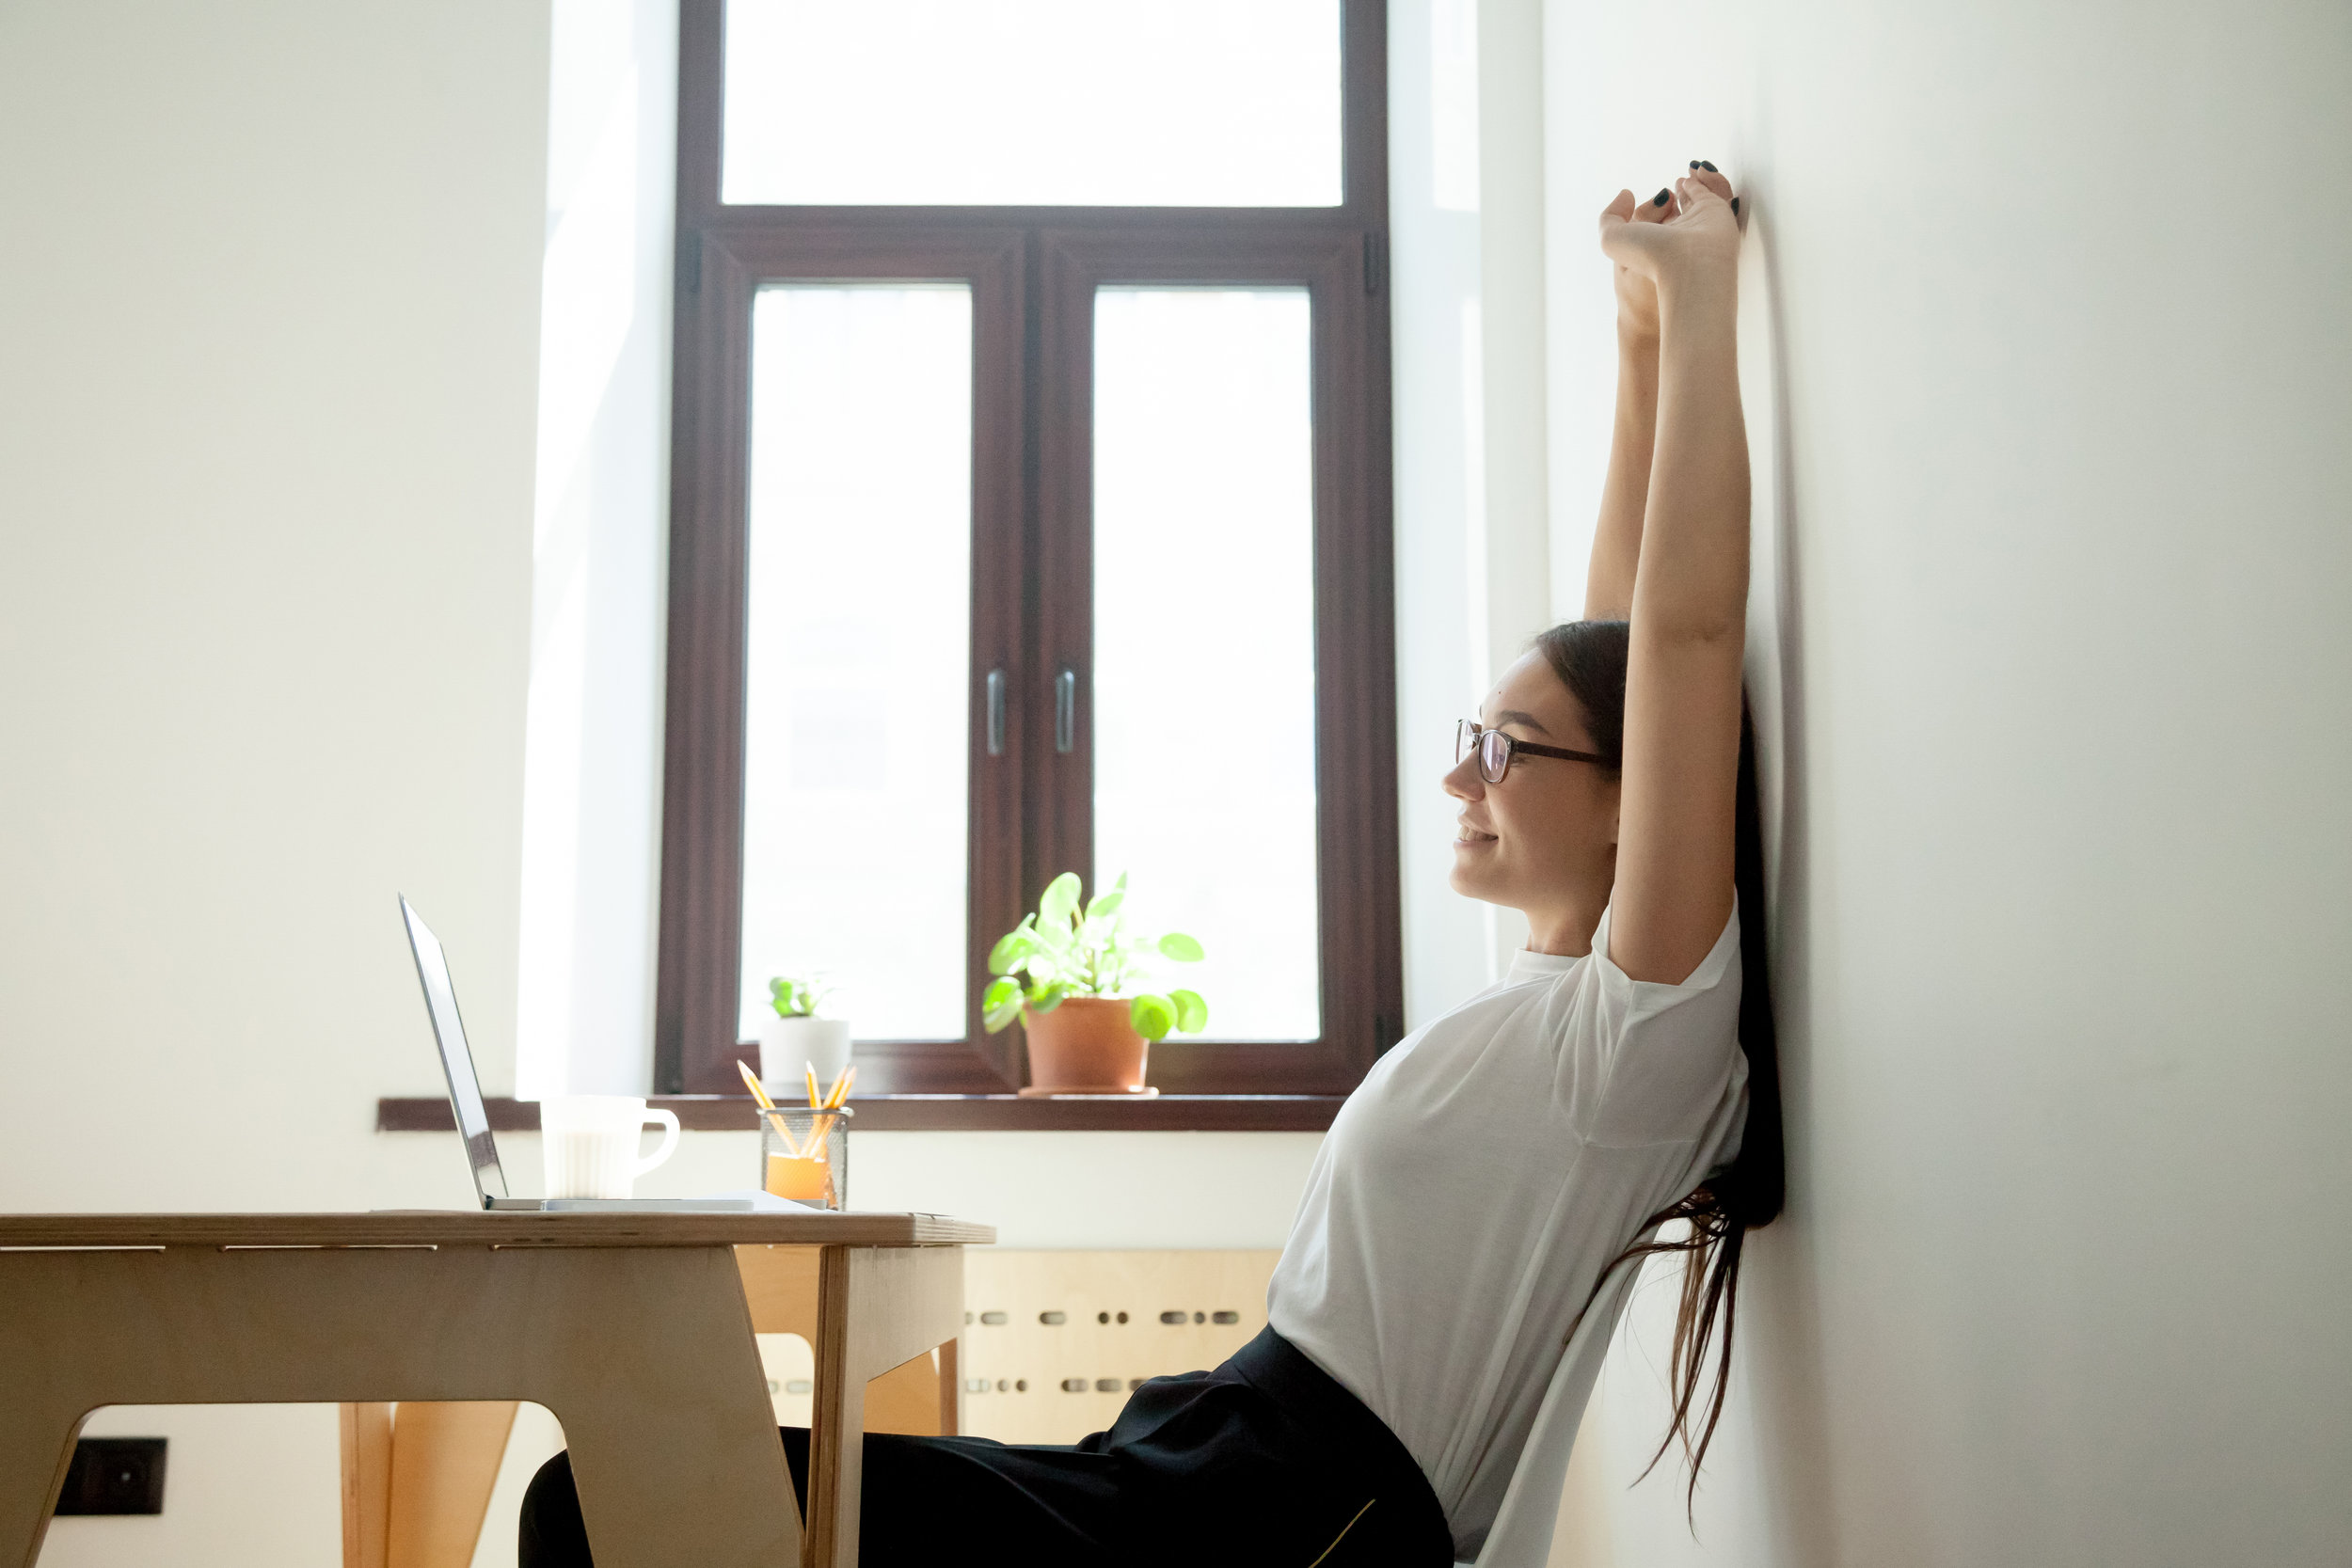 Attractive-young-businesswoman-relaxing,-stretching-at-desk-in-home-office-889206762_5349x3566.jpeg